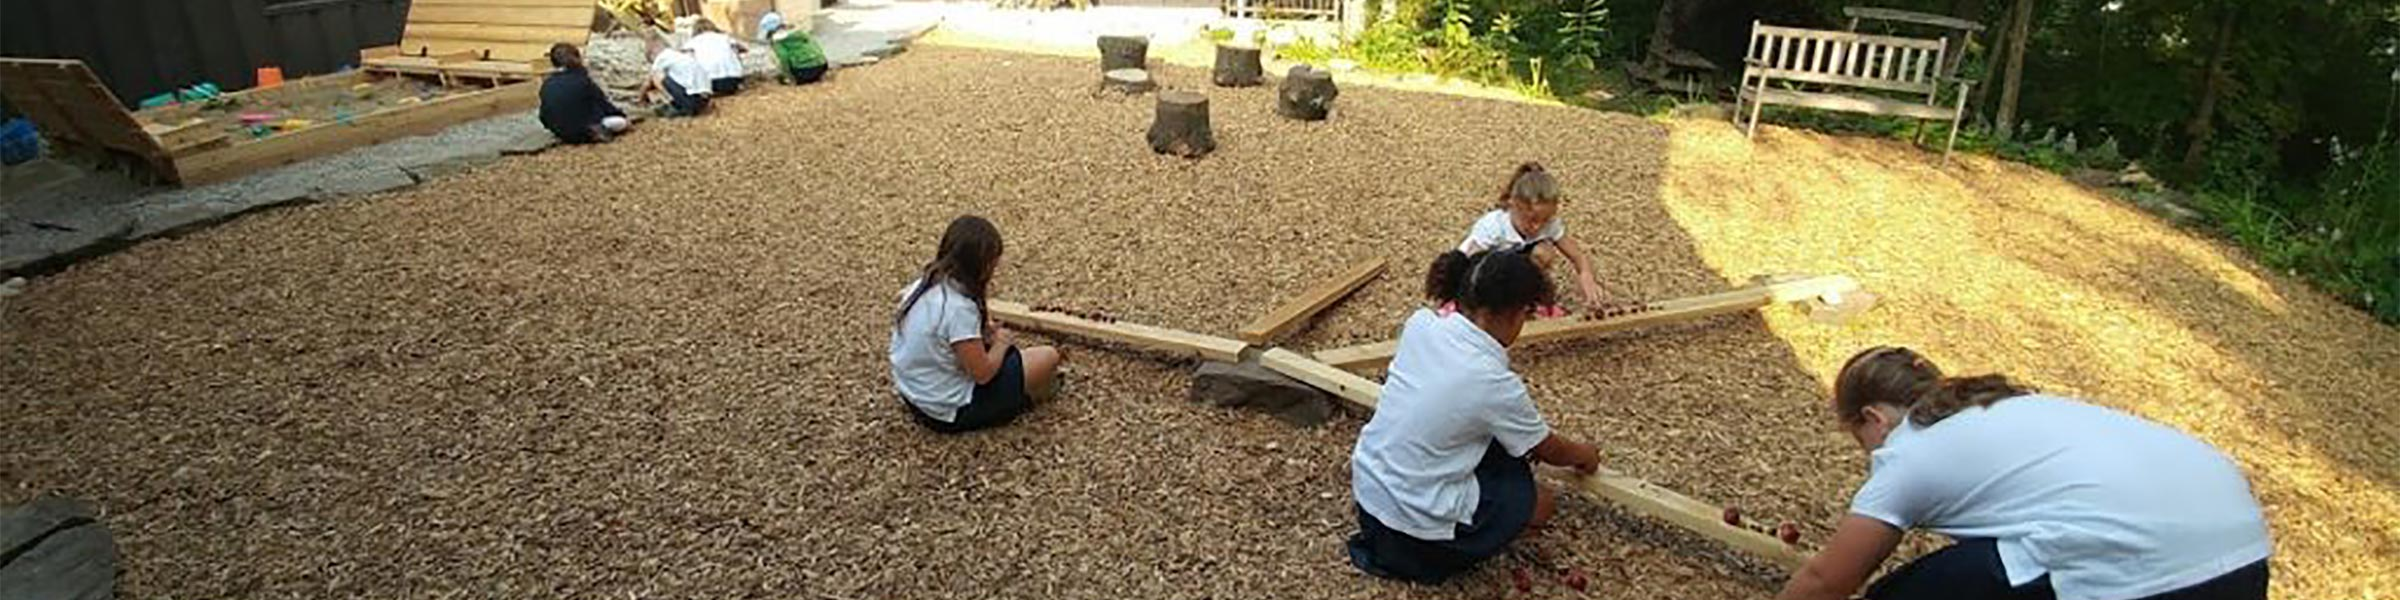 Continuing Play Based Learning into the Upper Grades Blog by Carmel New Church School